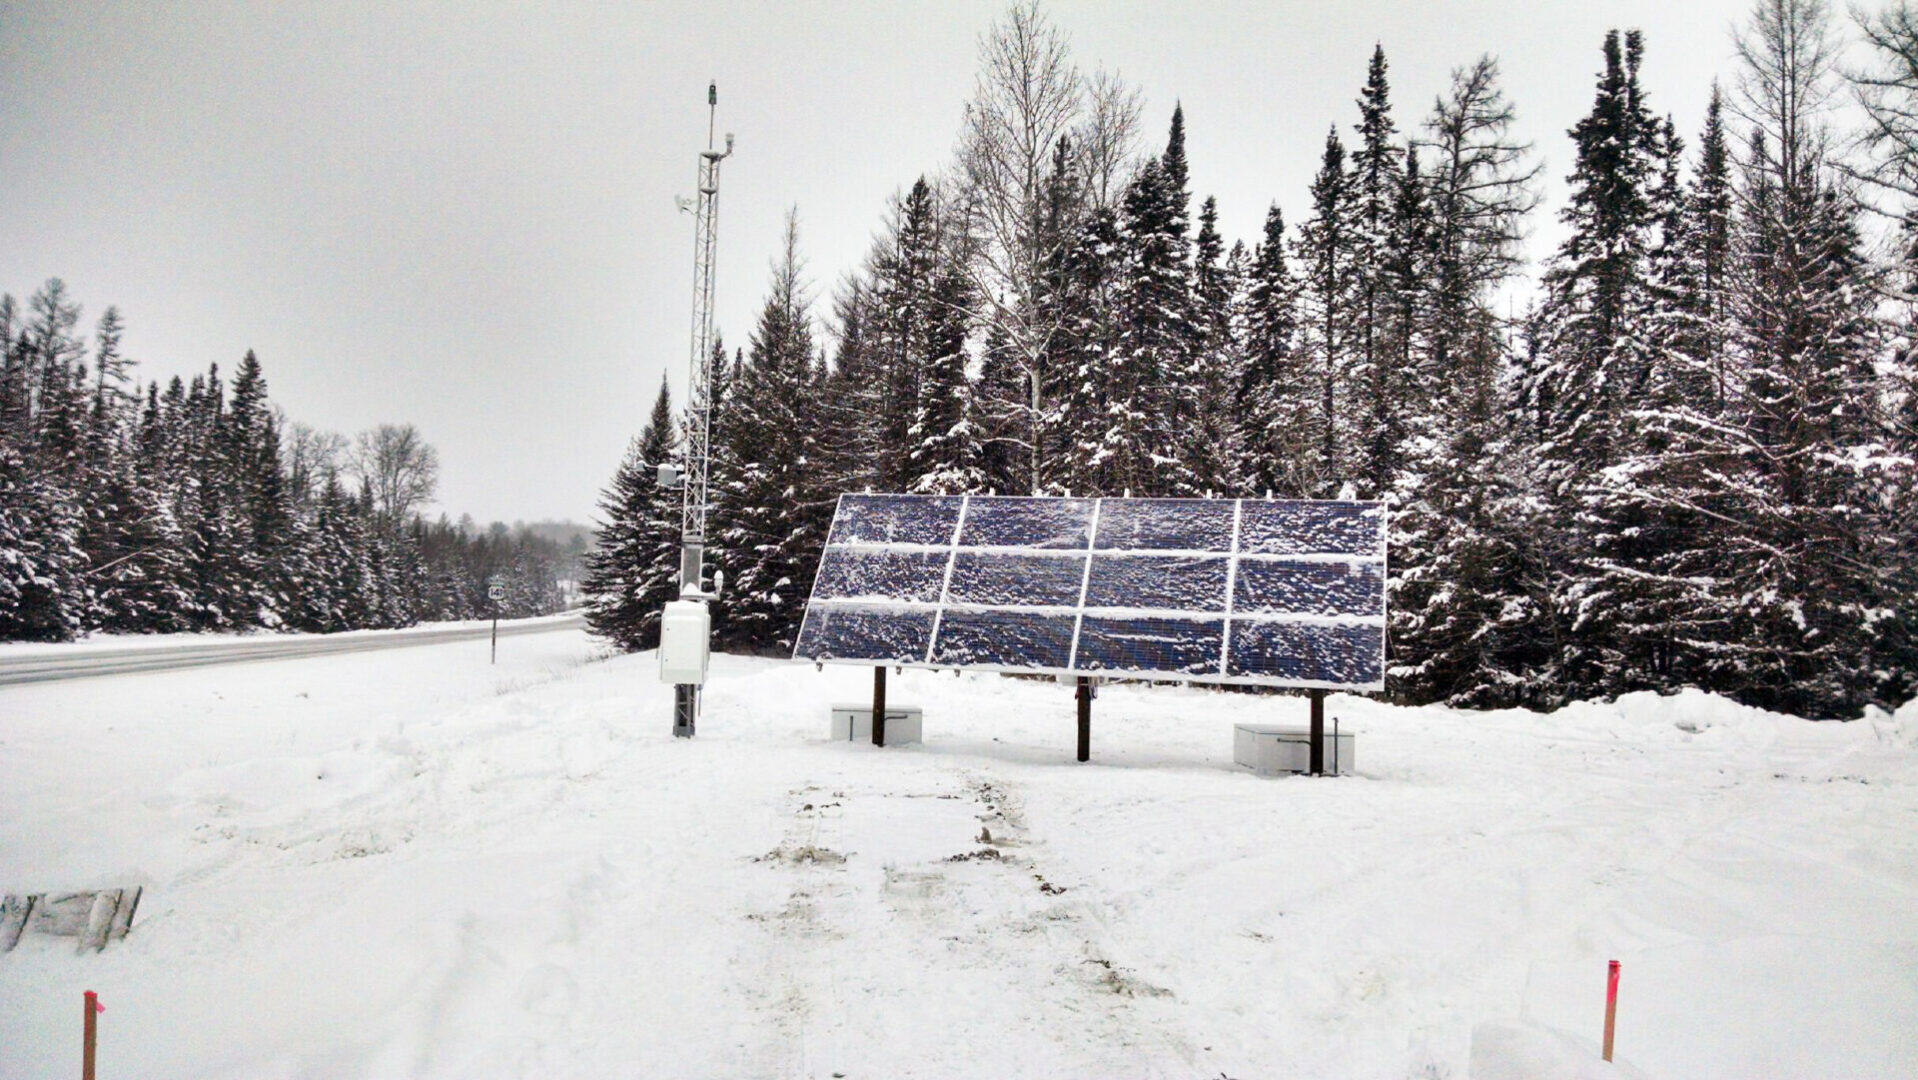 3.66kW Weather Station in Remote Northern Michigan with 30kWh Battery Back-up (they wanted 7 days autonomy)